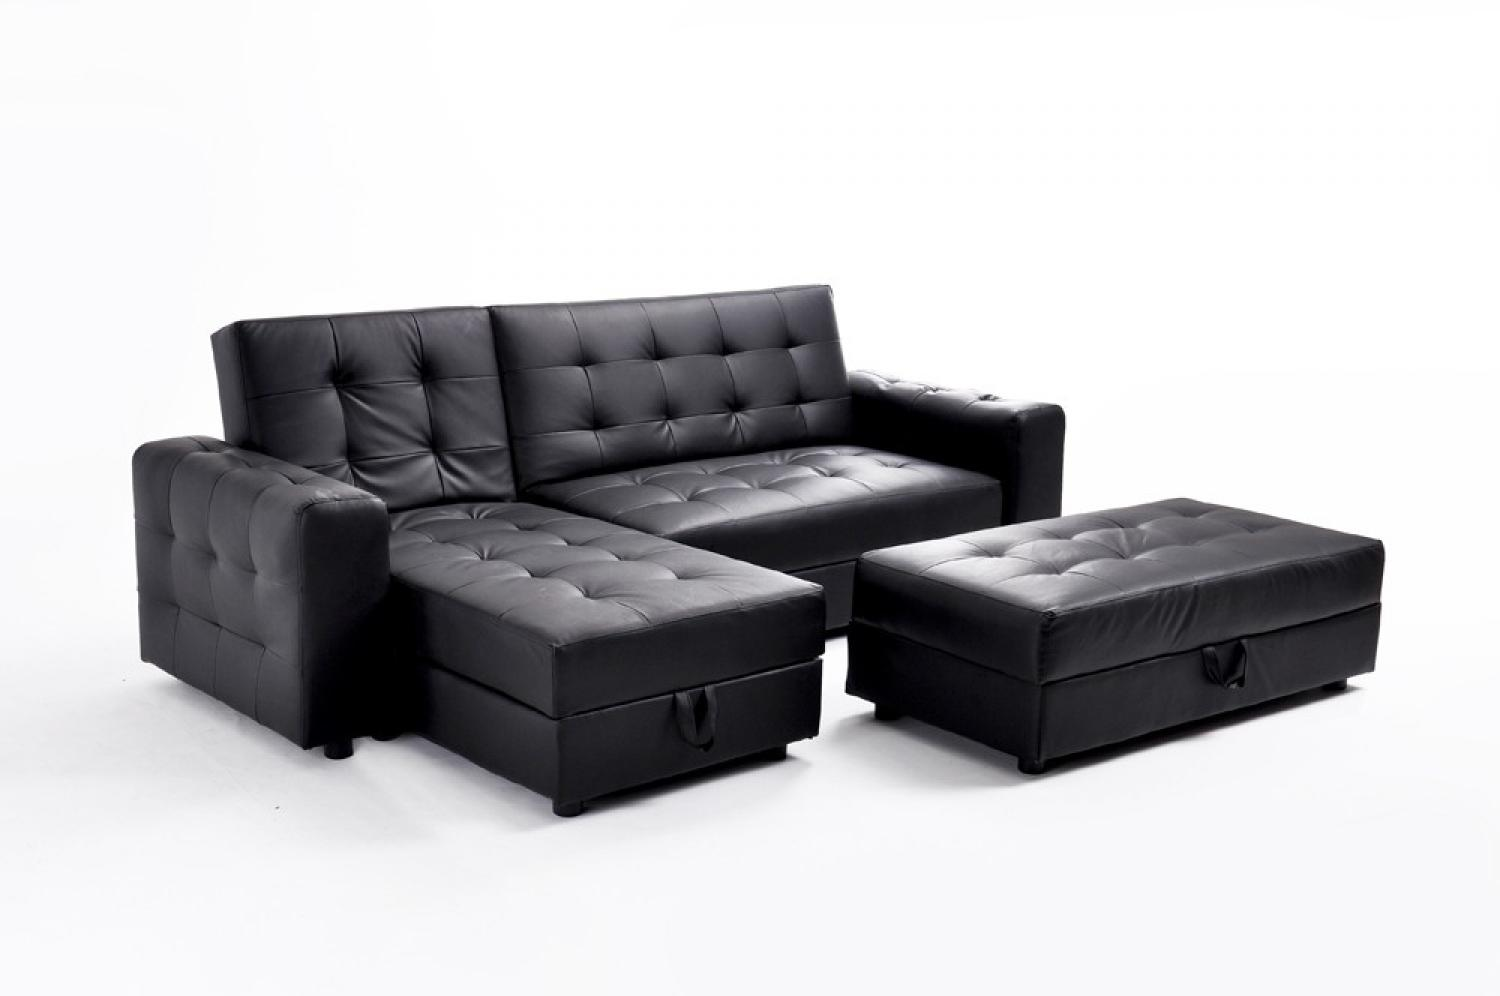 photos canap d 39 angle cuir noir convertible. Black Bedroom Furniture Sets. Home Design Ideas